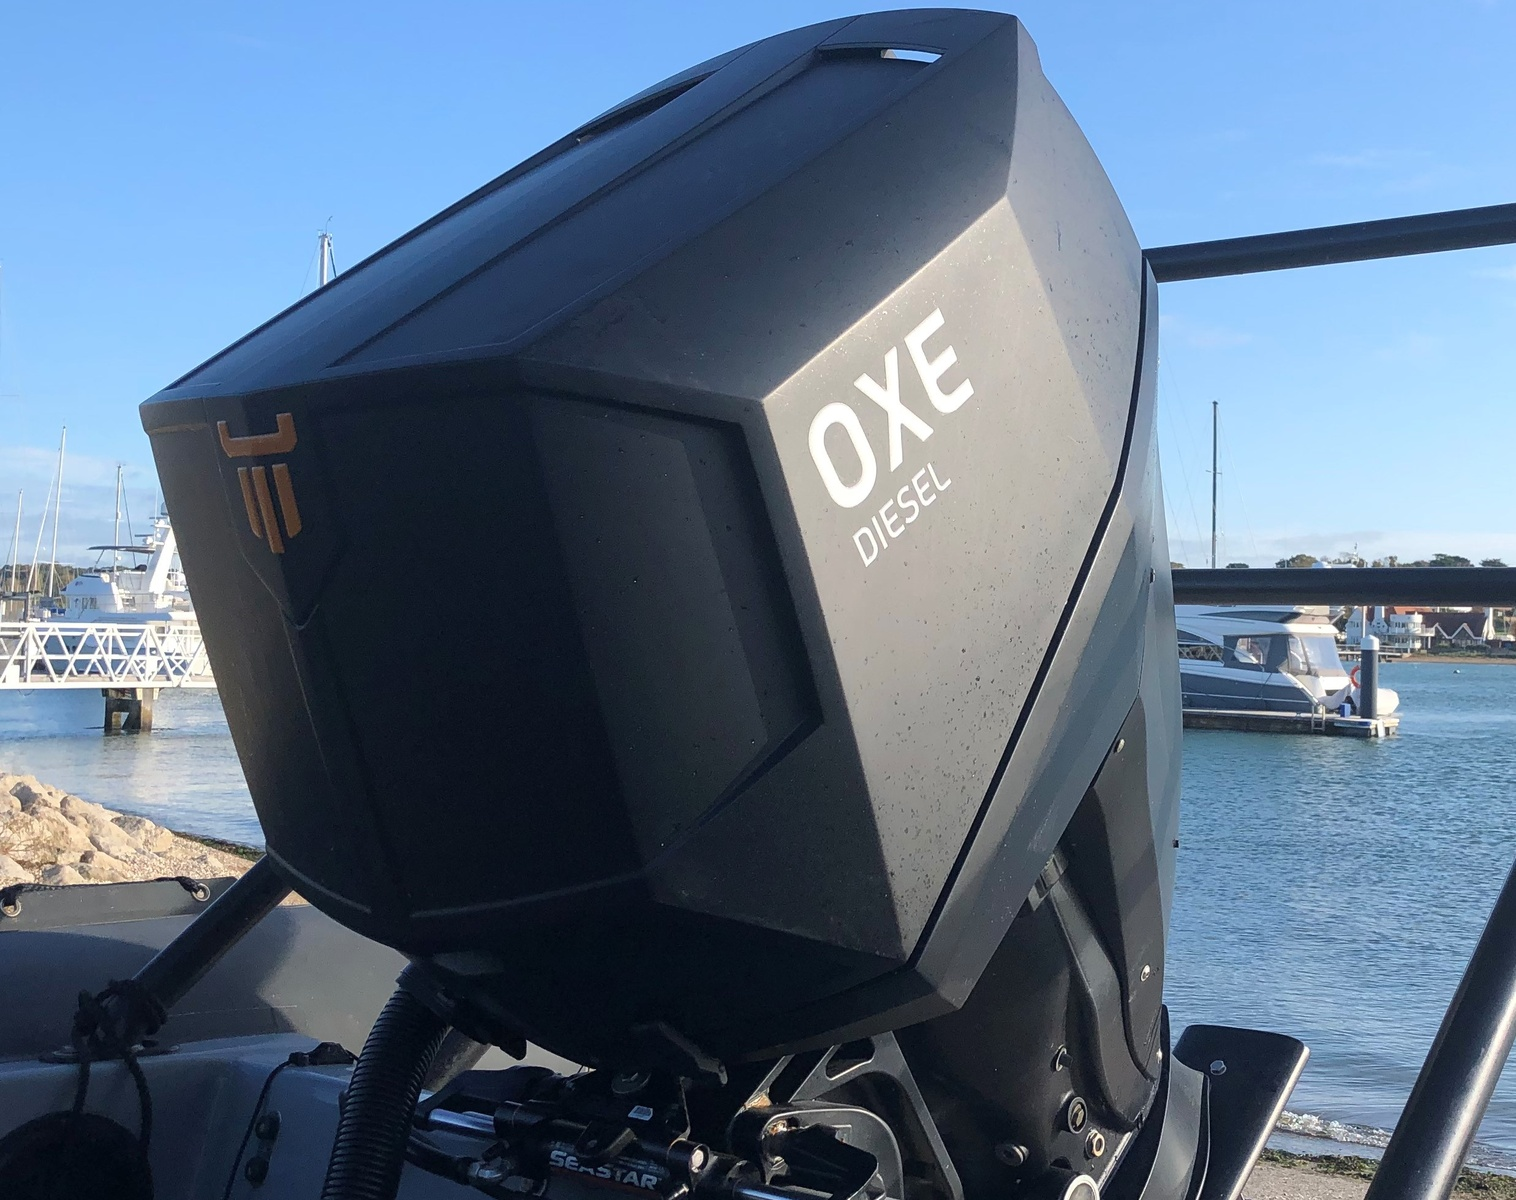 AST Marine Sciences and Proteum Ltd working together to bring marine telemetry to the outboards market